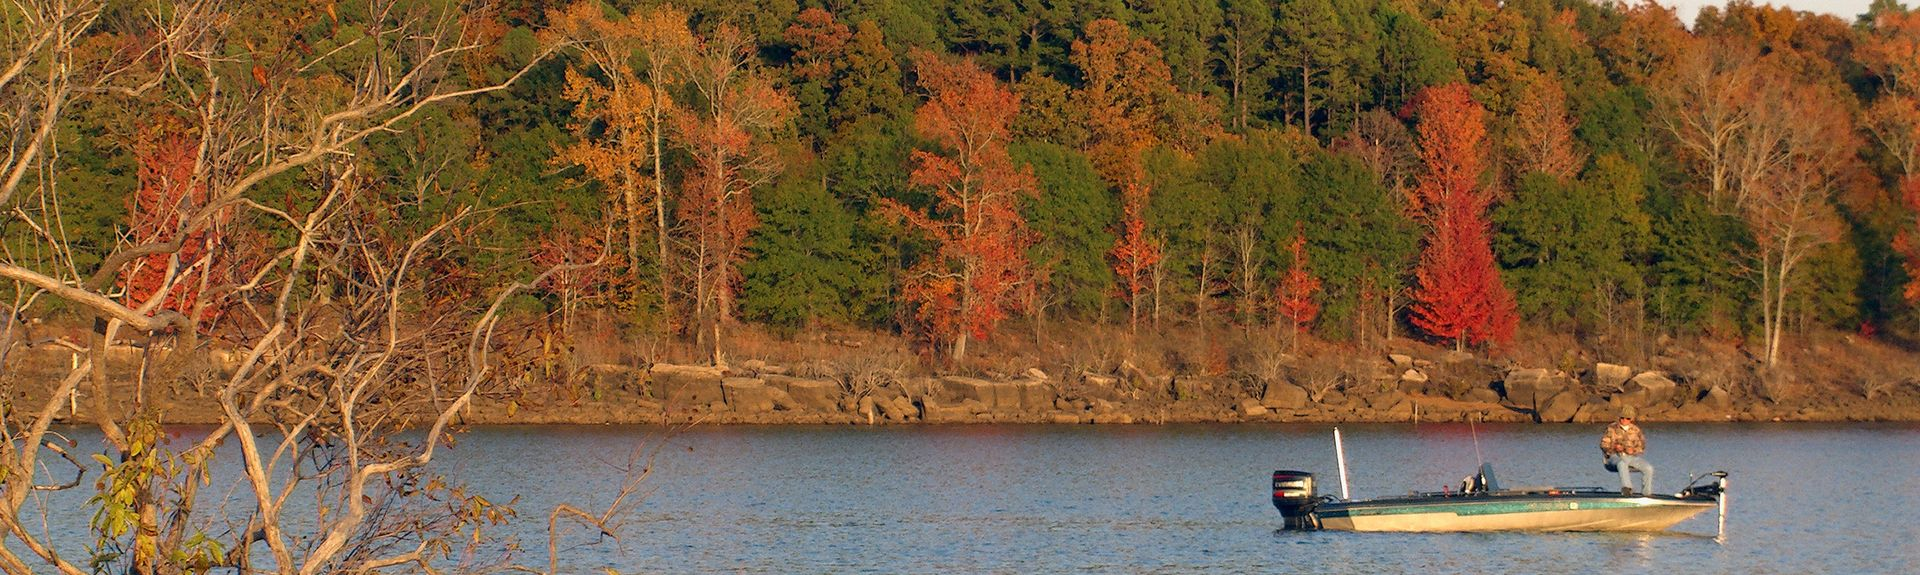 Greers Ferry Lake, Higden, Arkansas, Estados Unidos